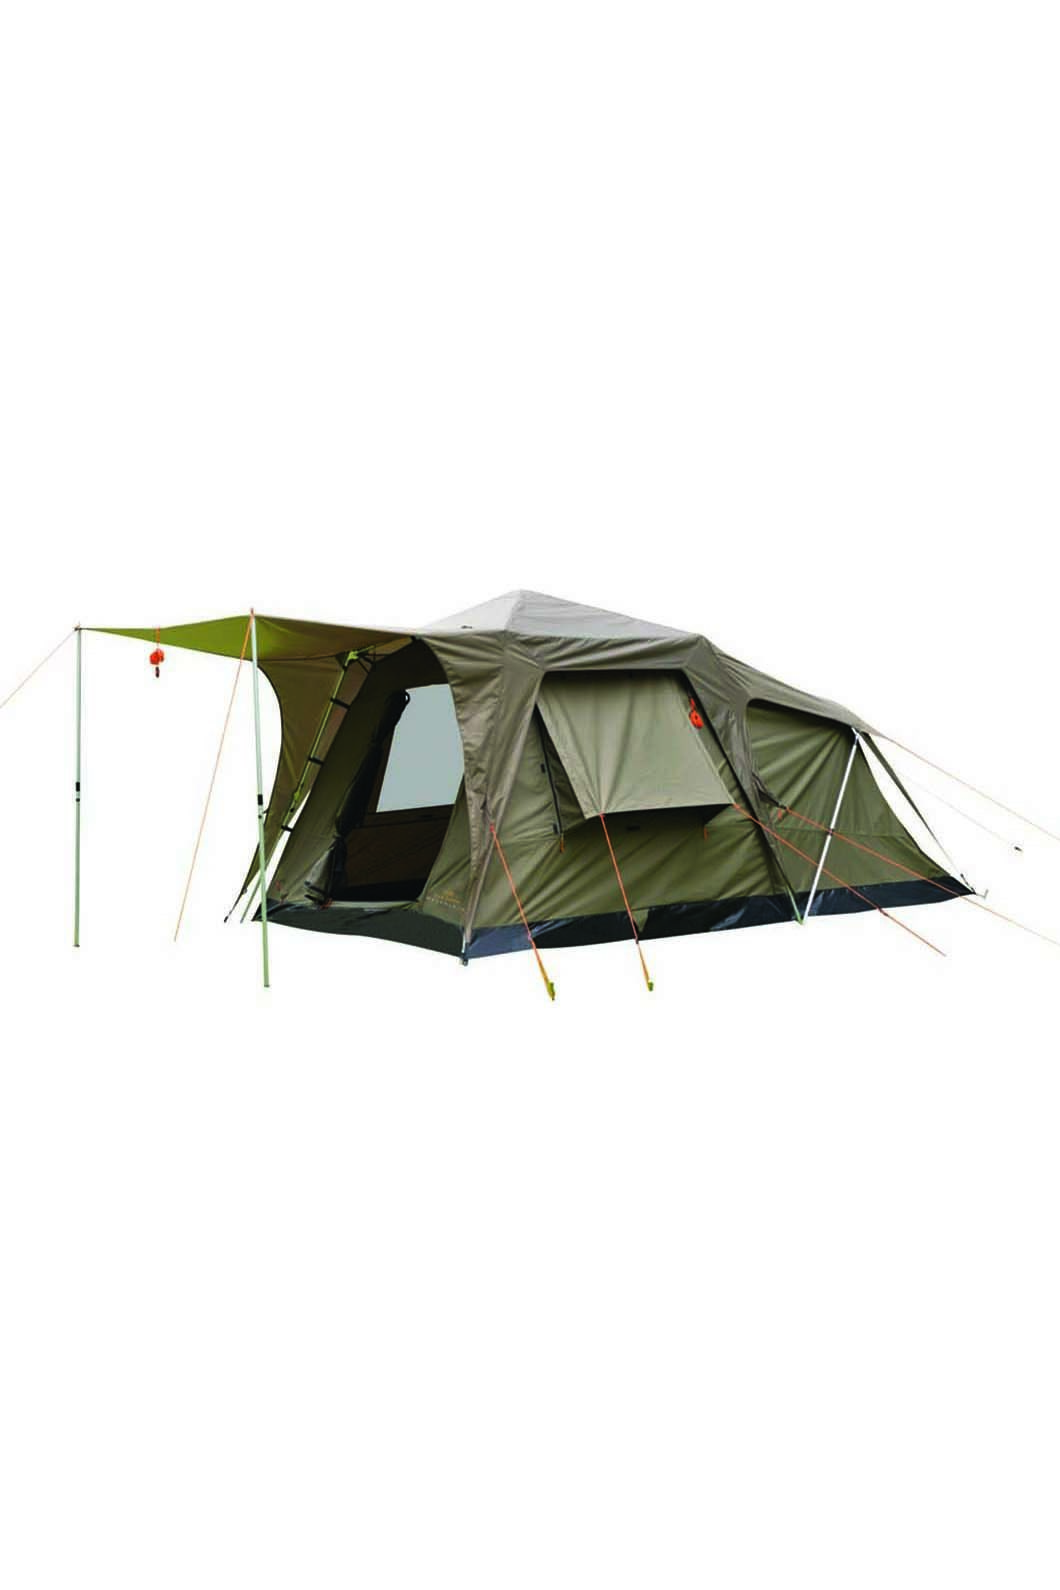 Wanderer Tourer Extreme 430 7 Person Touring Tent, None, hi-res